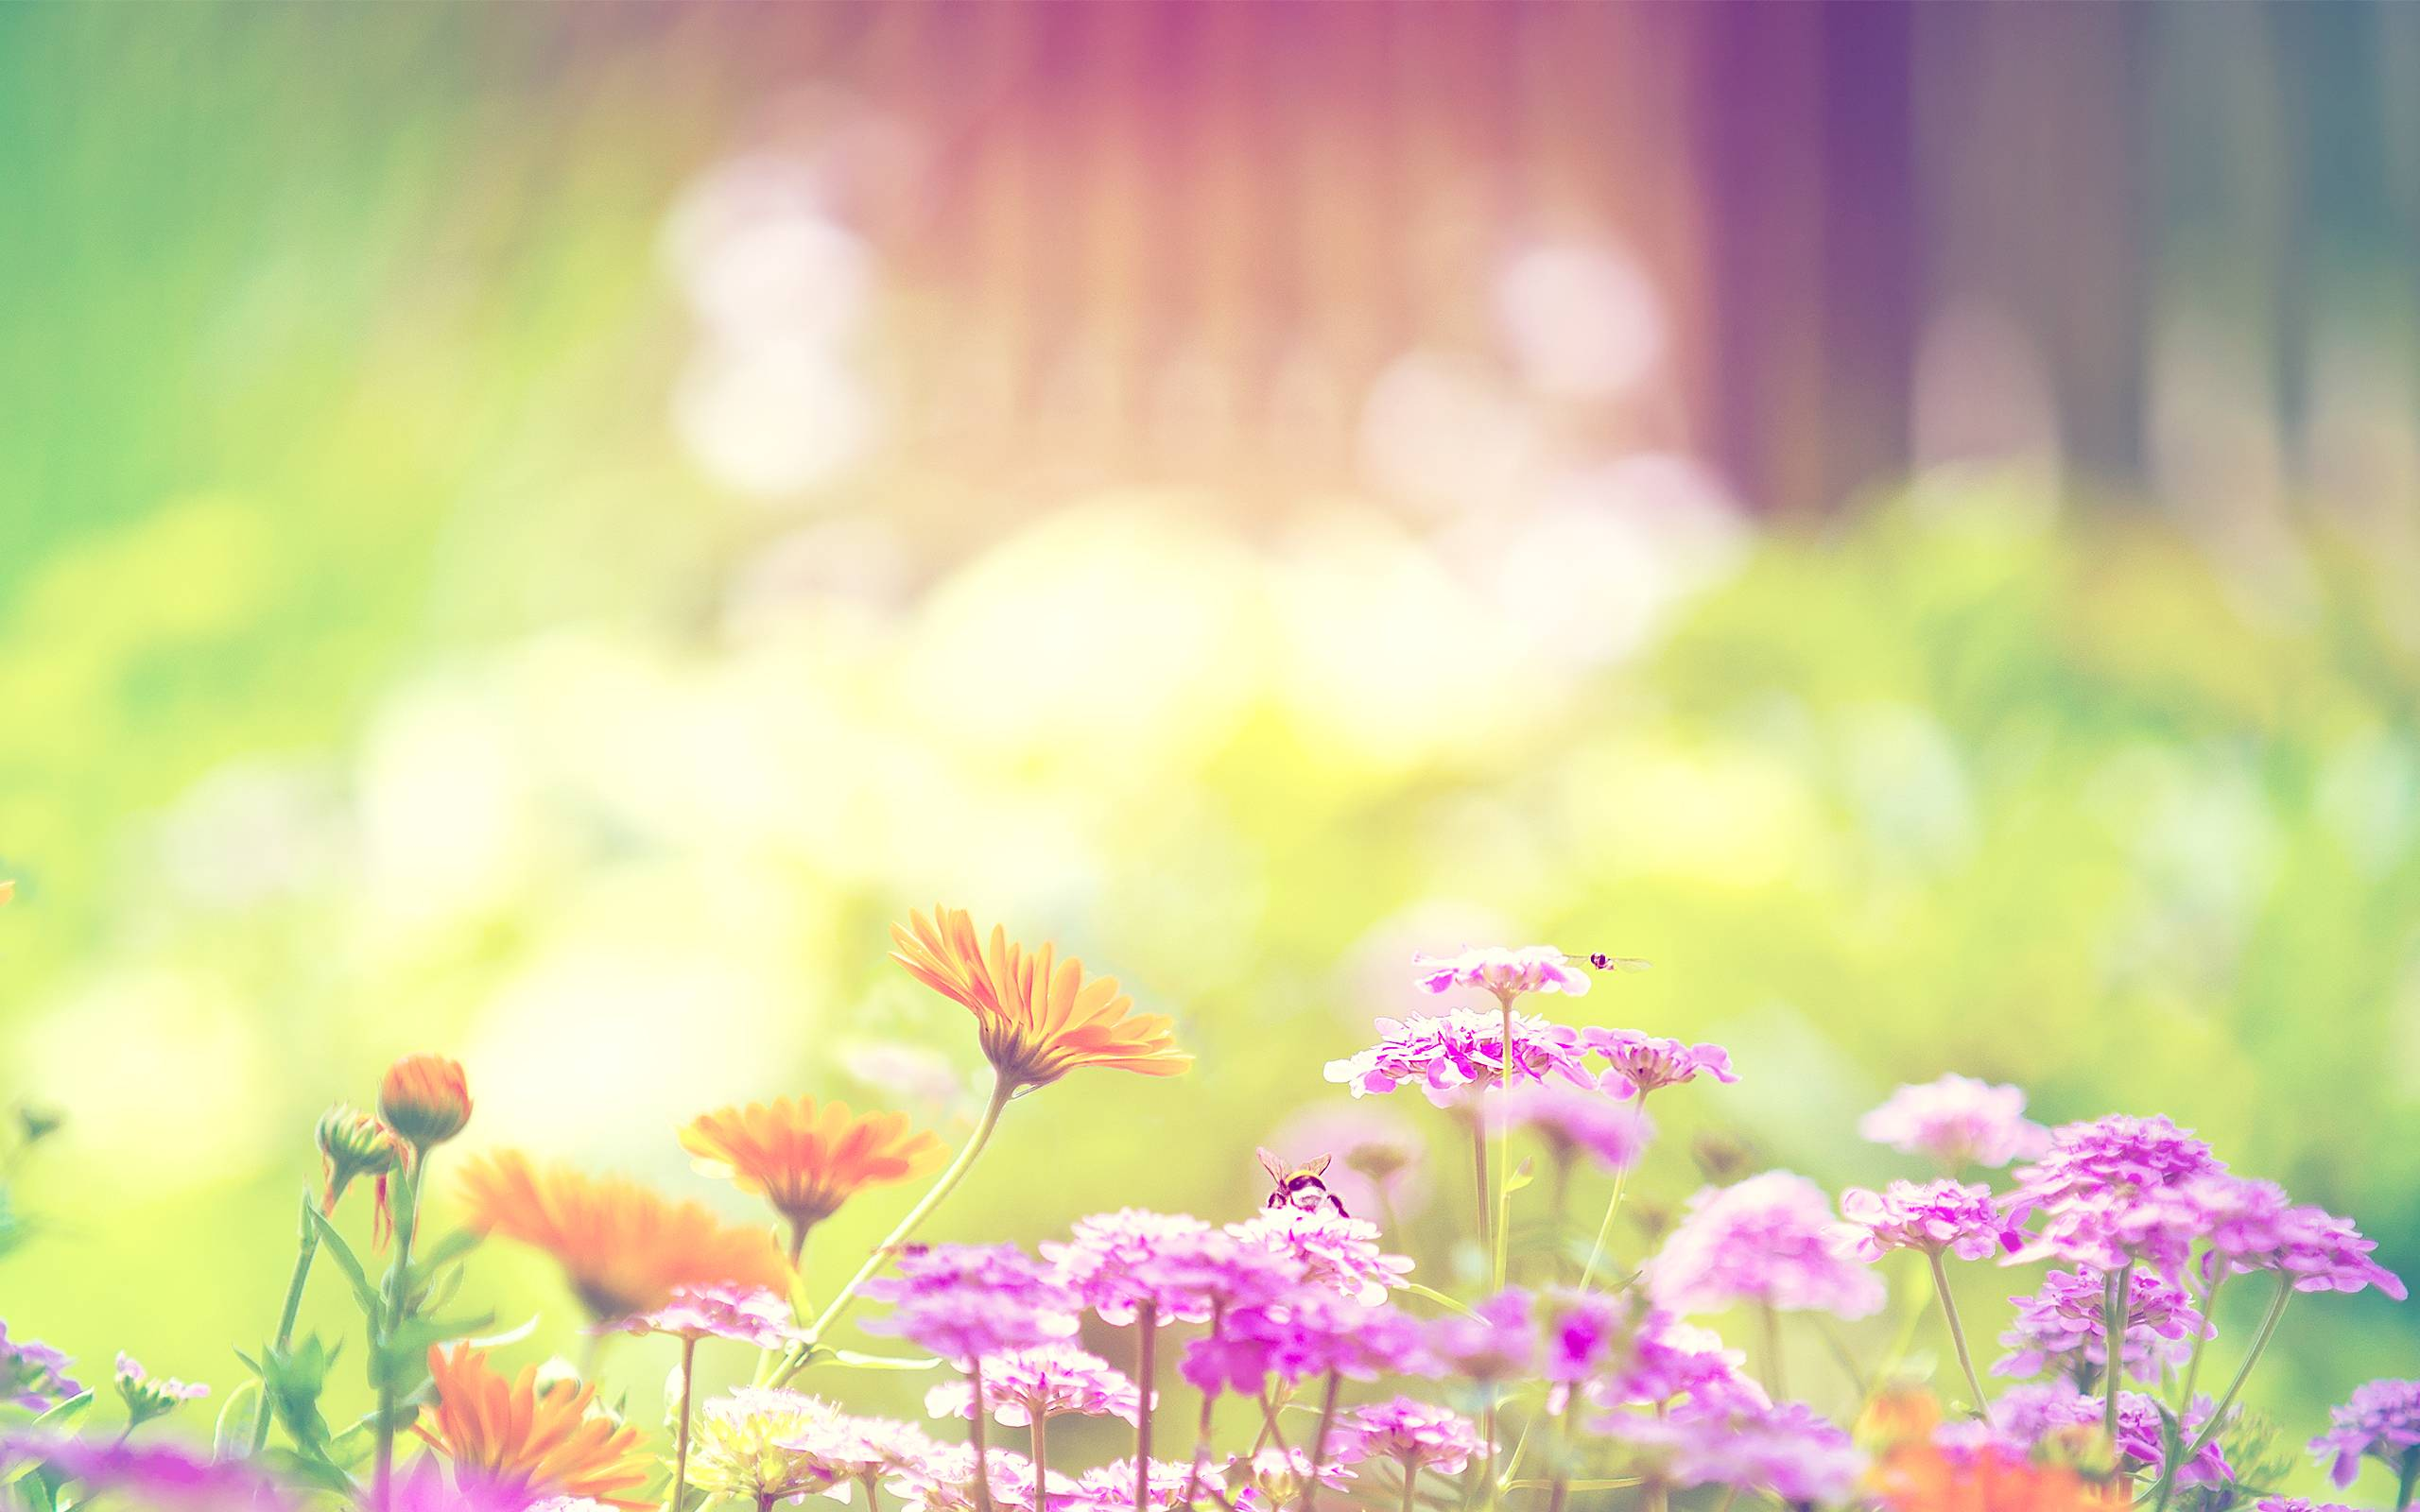 Trendy Desktop Spring Flowers Hd Wallpapers 2560x1600PX ~ Colorful